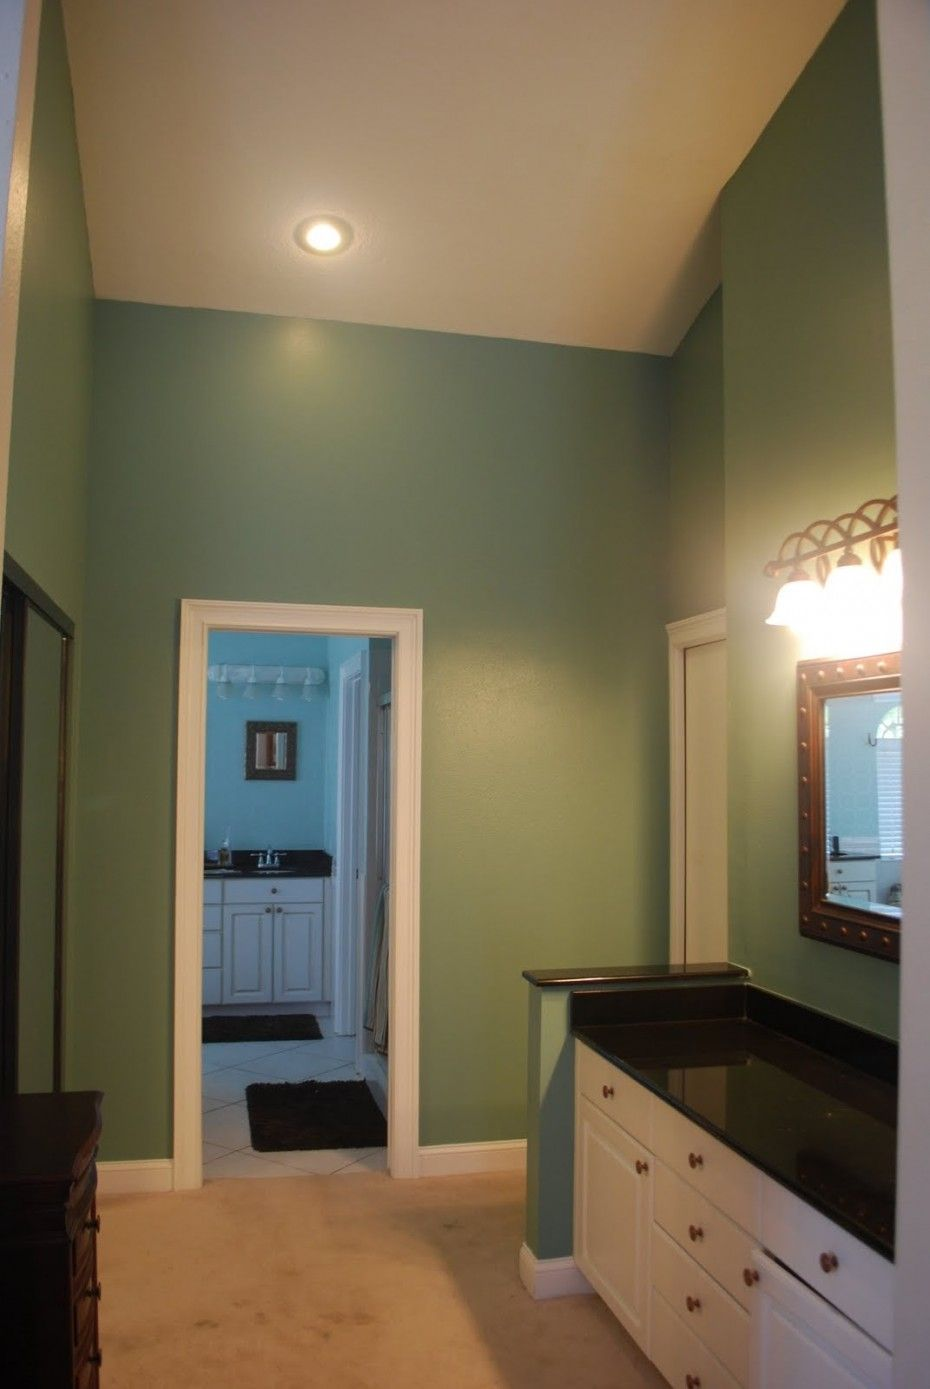 Bathroom paint colors ideas warm green bathroom painting Paint ideas for bathroom